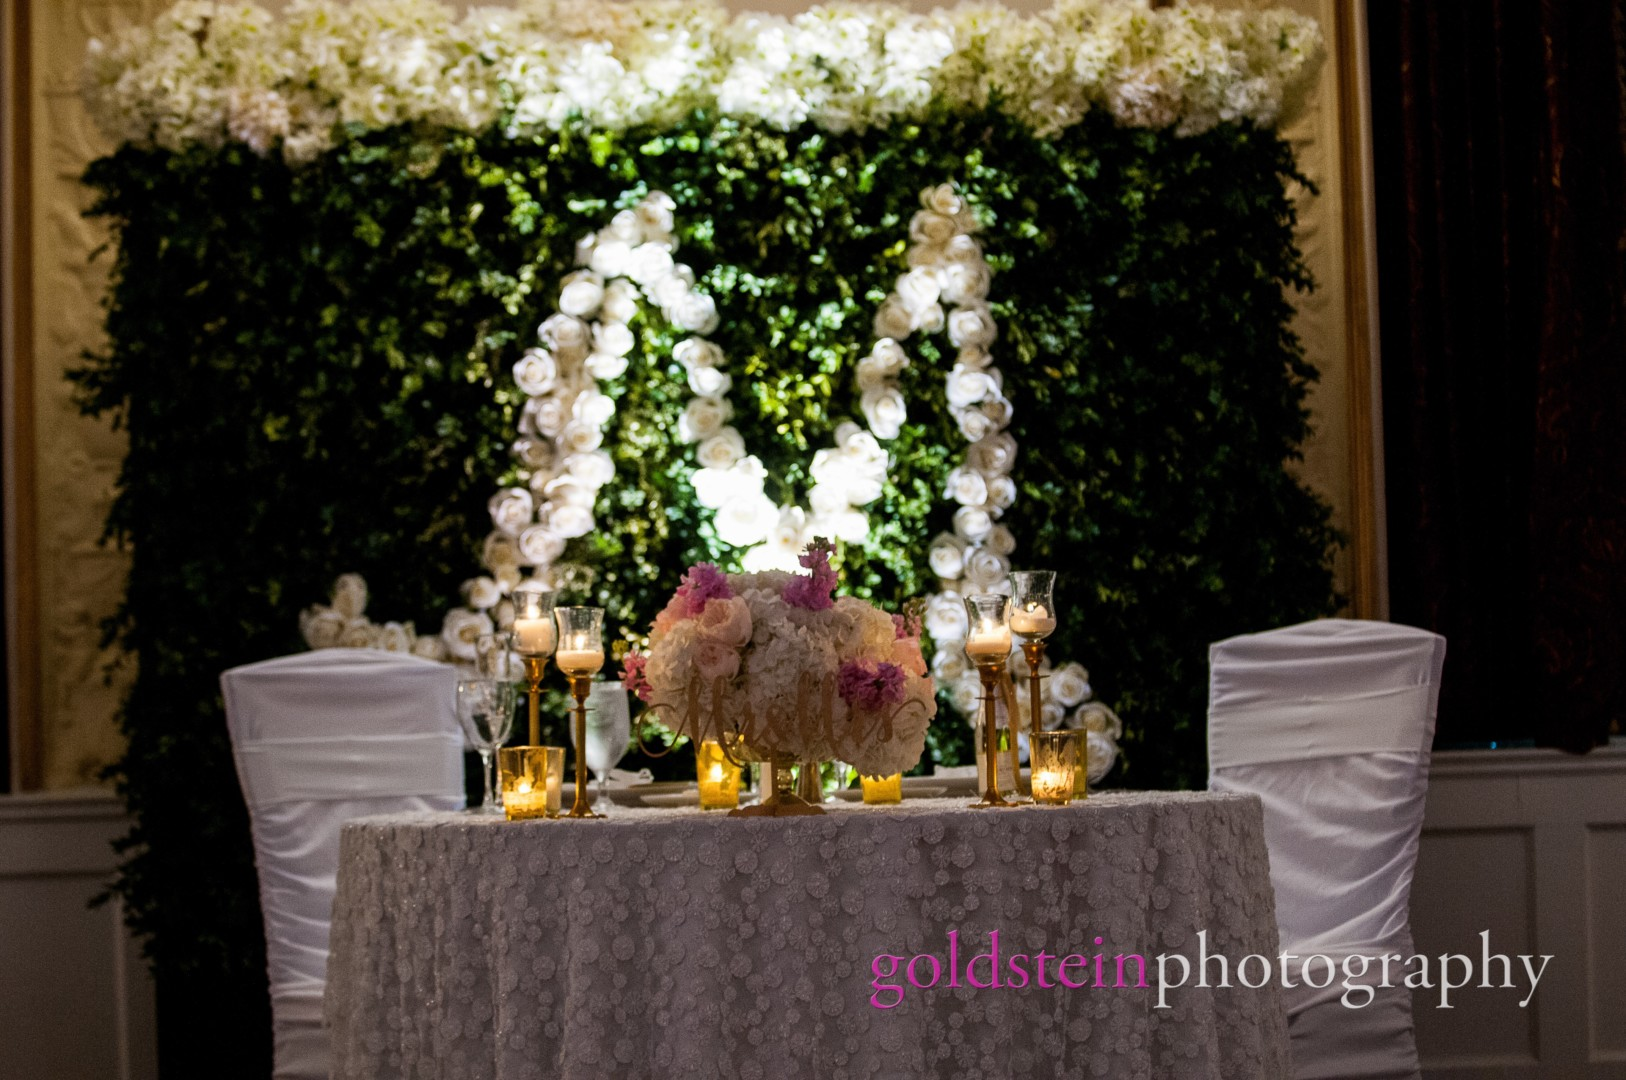 Bride Groom Sweetheart Table with Floral Monogram of Leaves & White Flowers at their wedding